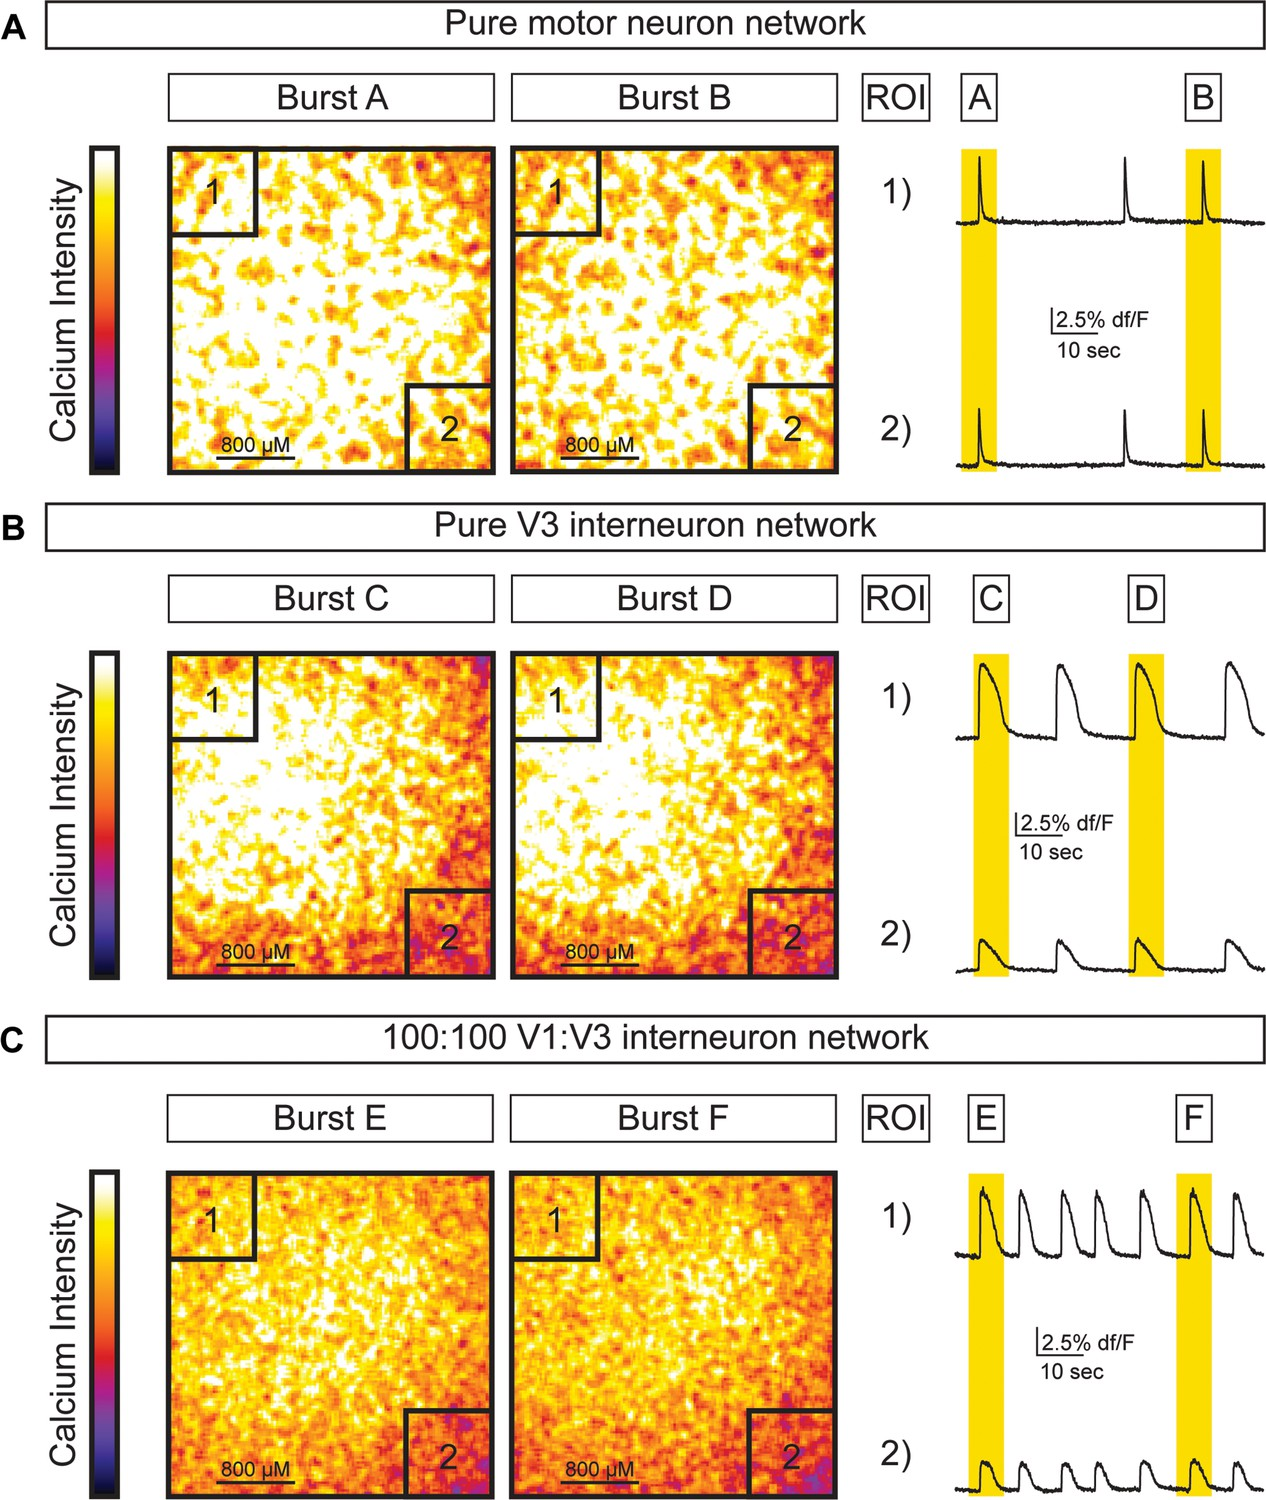 Speed and segmentation control mechanisms characterized in